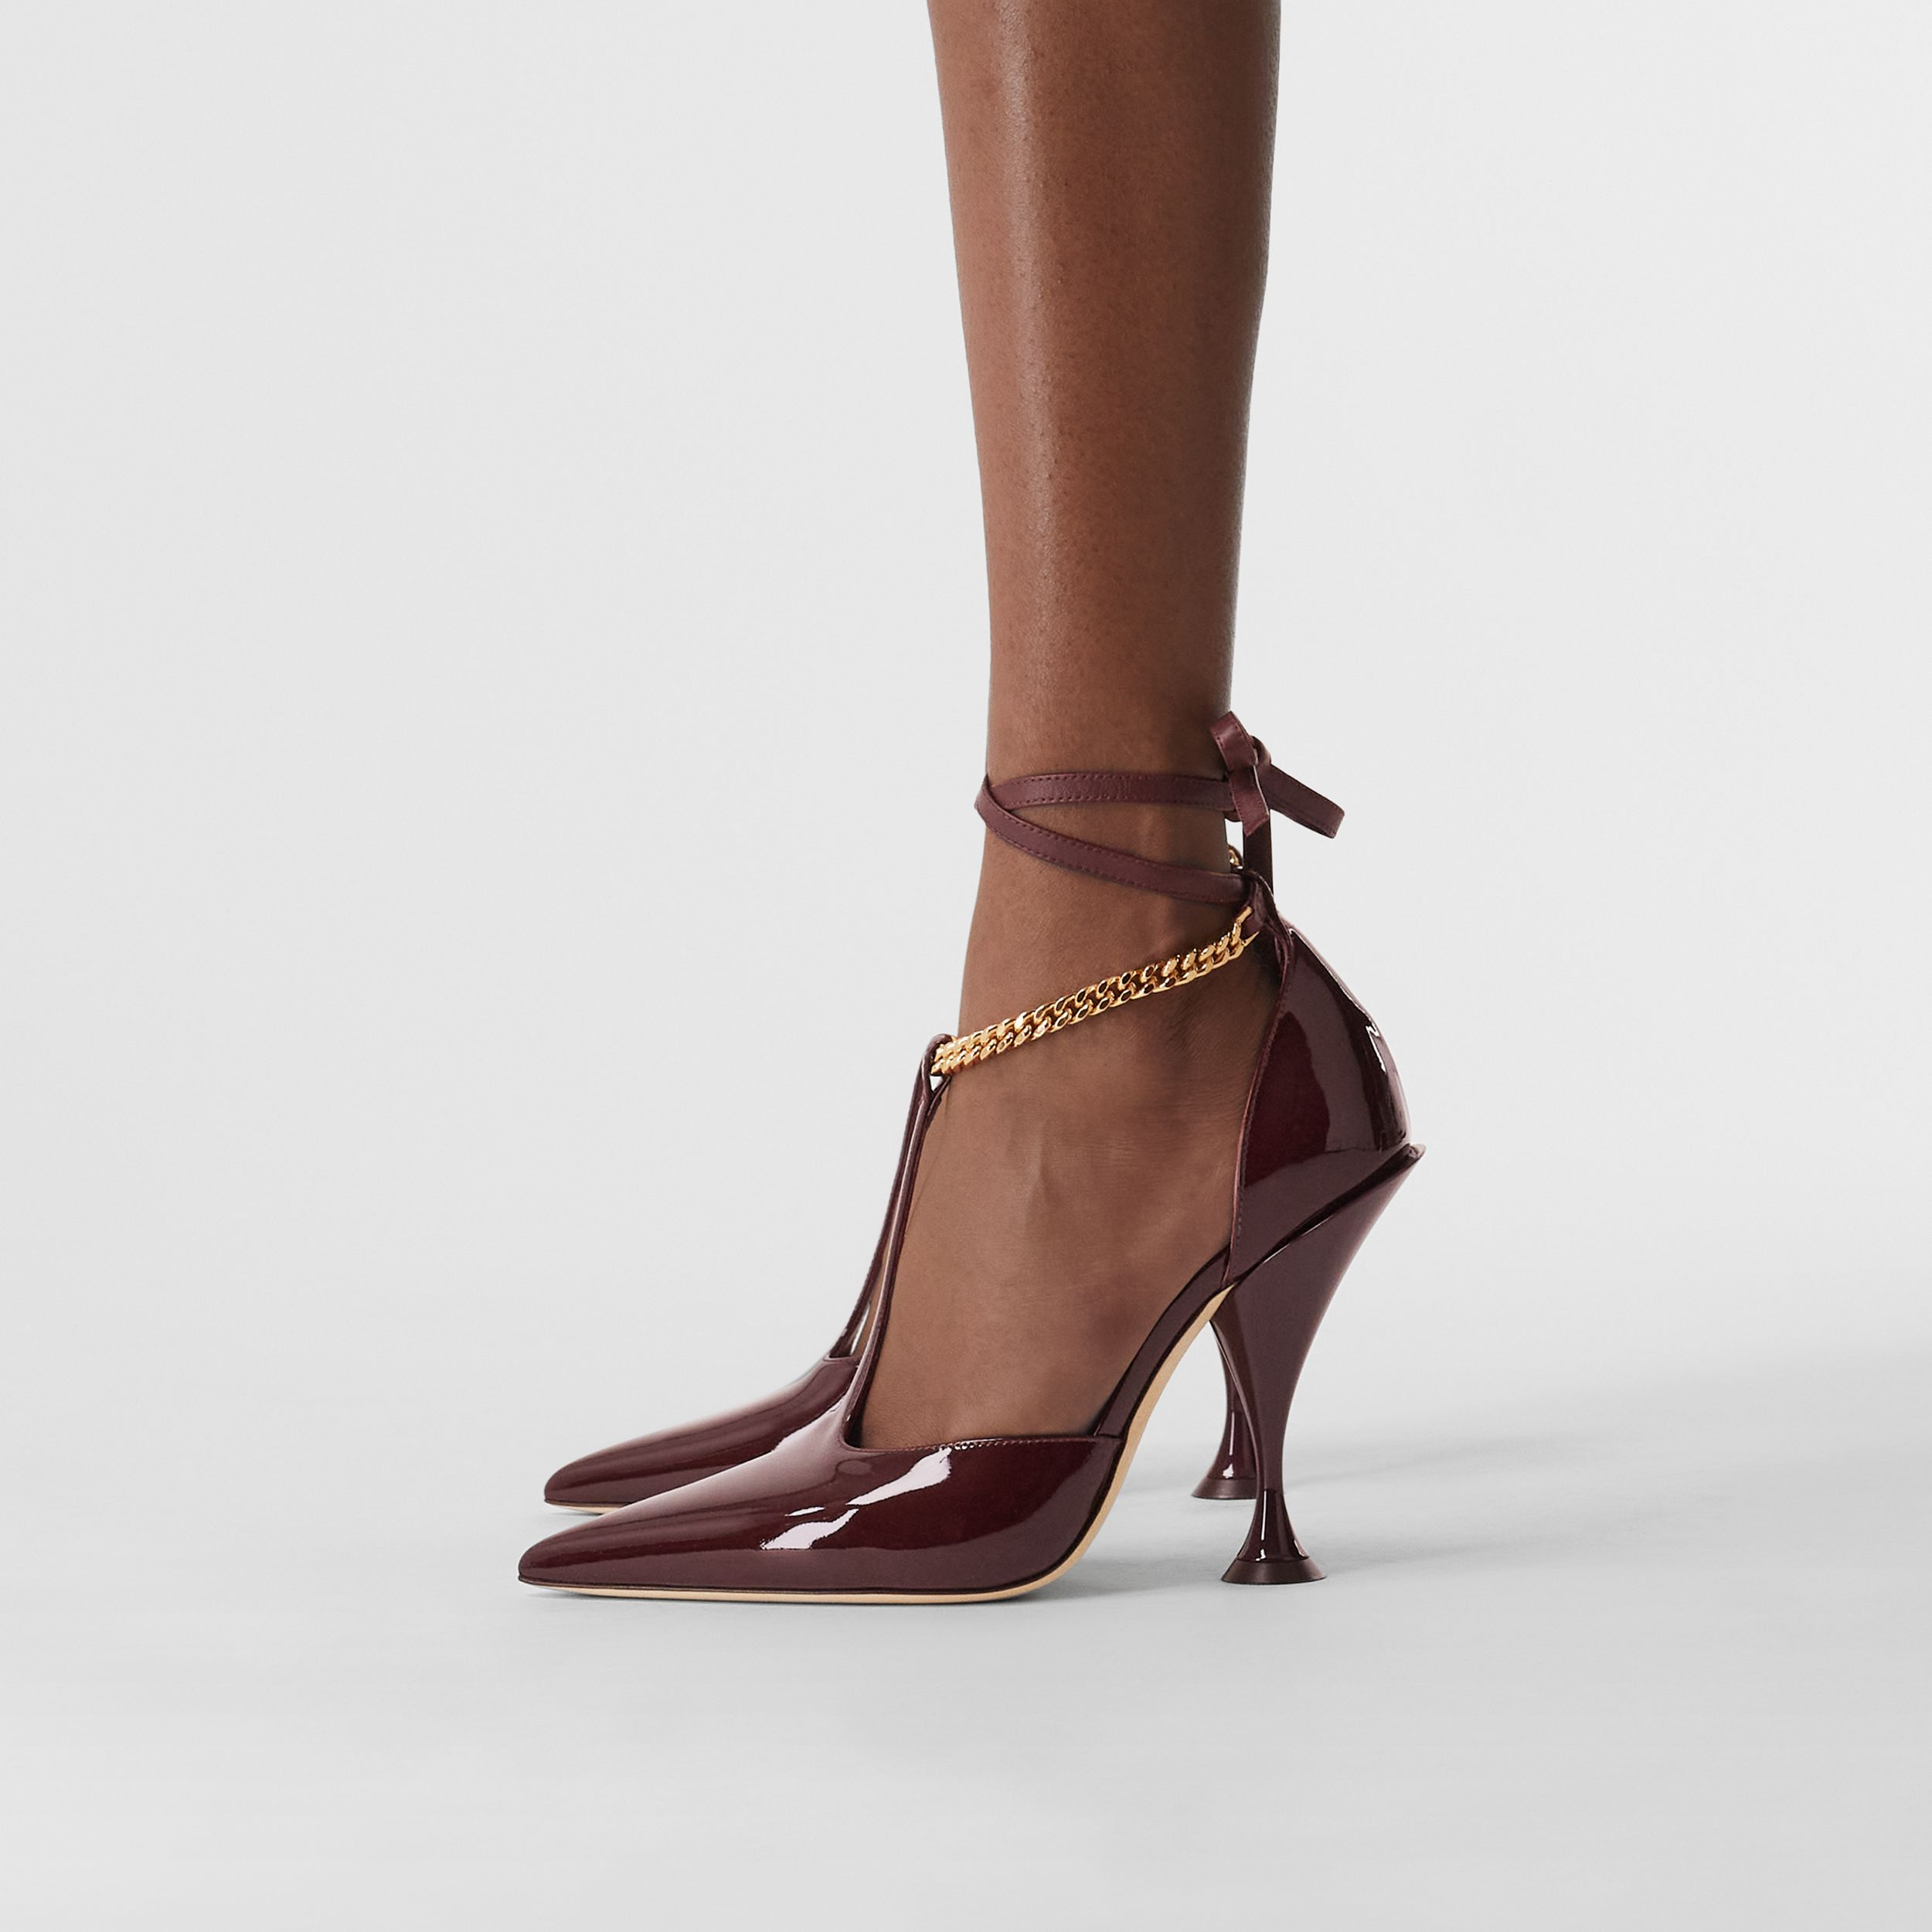 Chain Detail Patent Leather Pumps in Oxblood - Women | Burberry - 3